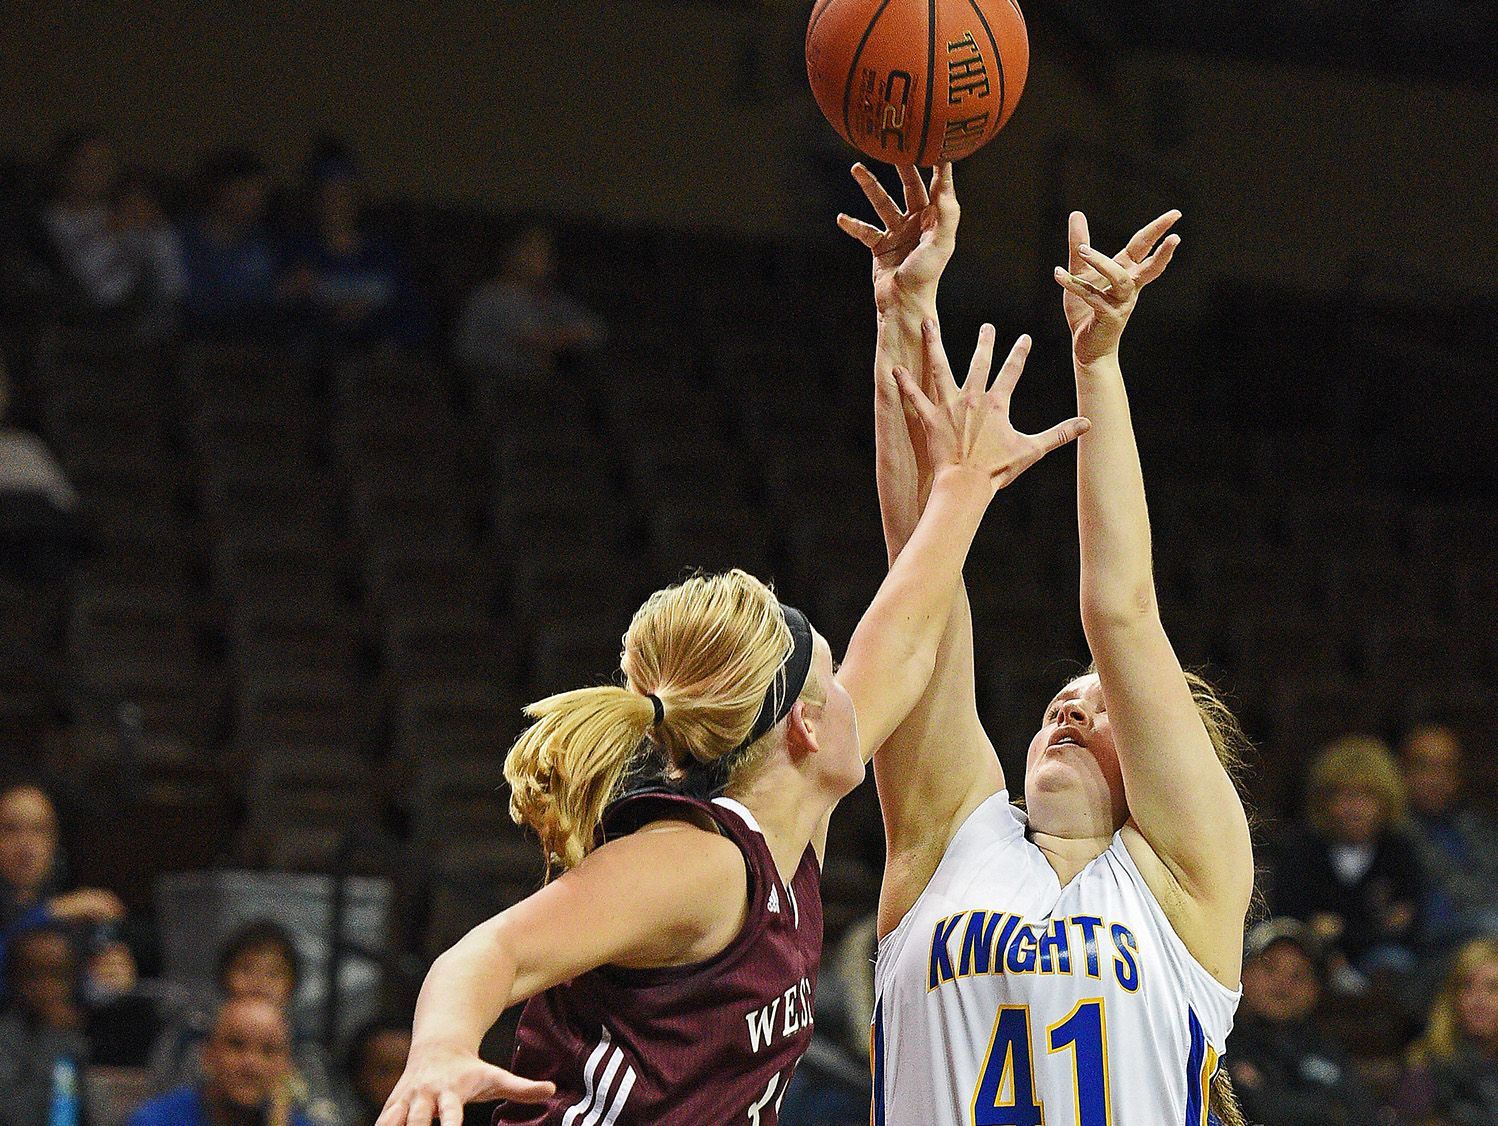 O'Gorman's Courtney Baruth (41) takes a shot during a game against Western Christian during the Edith Sanford Breast Center Girls Pentagon Classic Saturday, Dec. 17, 2016, at the Sanford Pentagon in Sioux Falls.